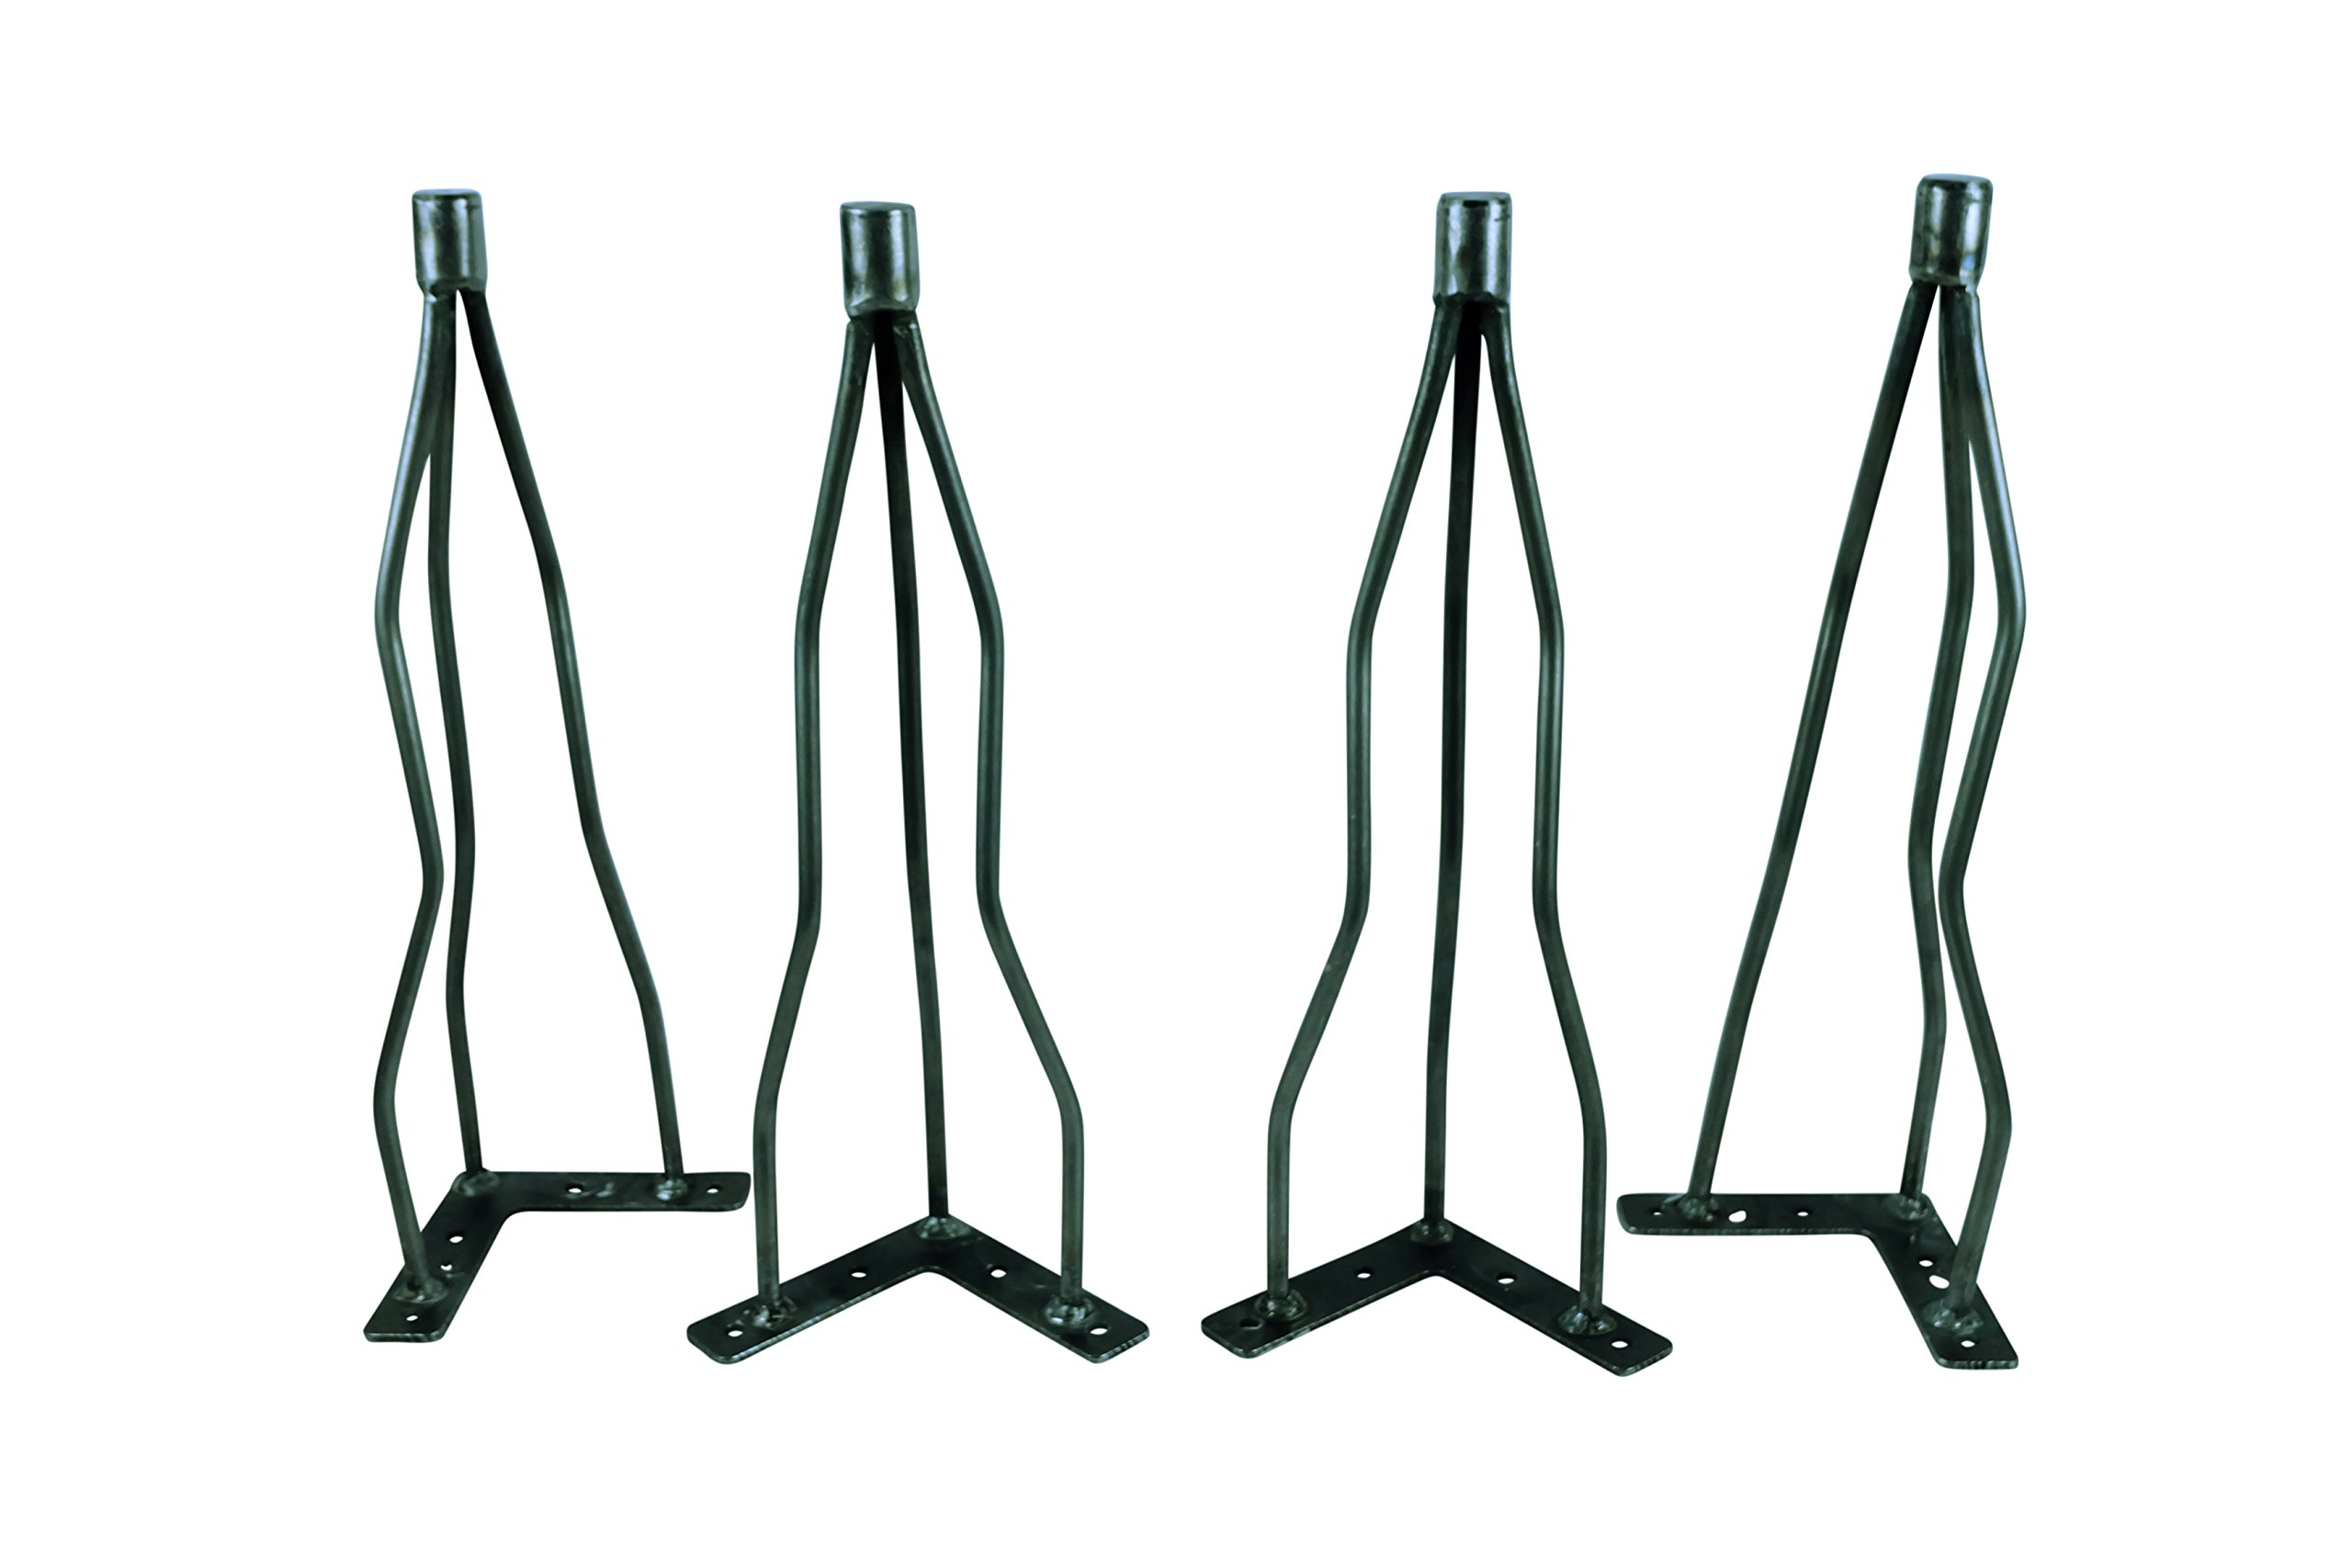 30'' Tall Curvy Hairpin Legs, 3/8'' Solid Steel, Unfinished Raw Steel, Set of 4